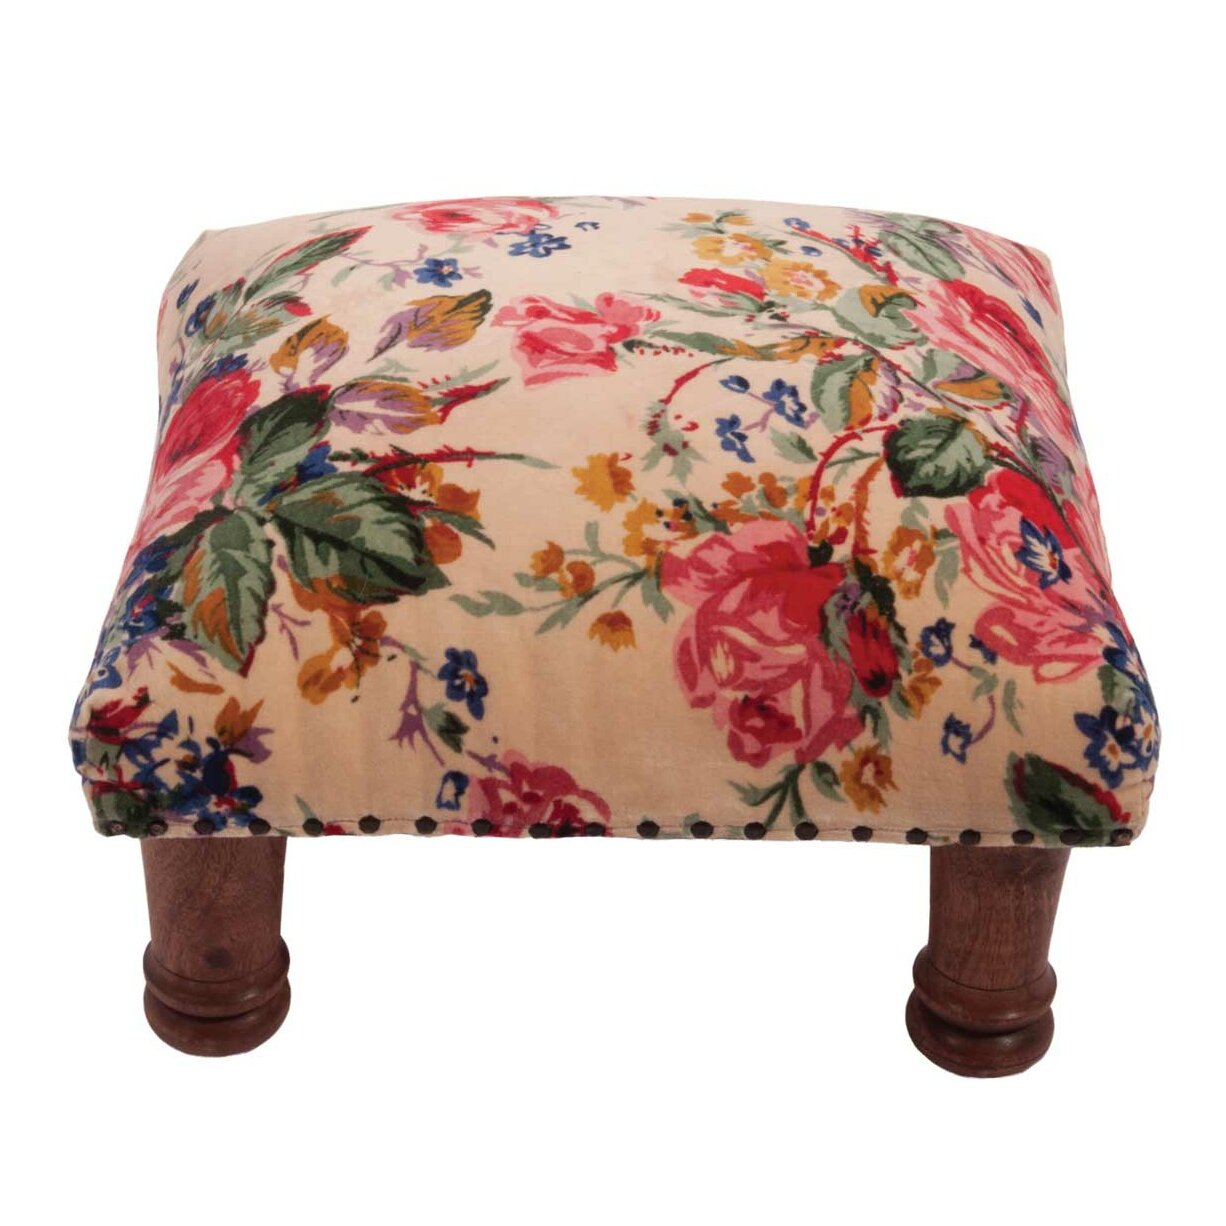 Ian Snow Rose Footstool | Wayfair UK